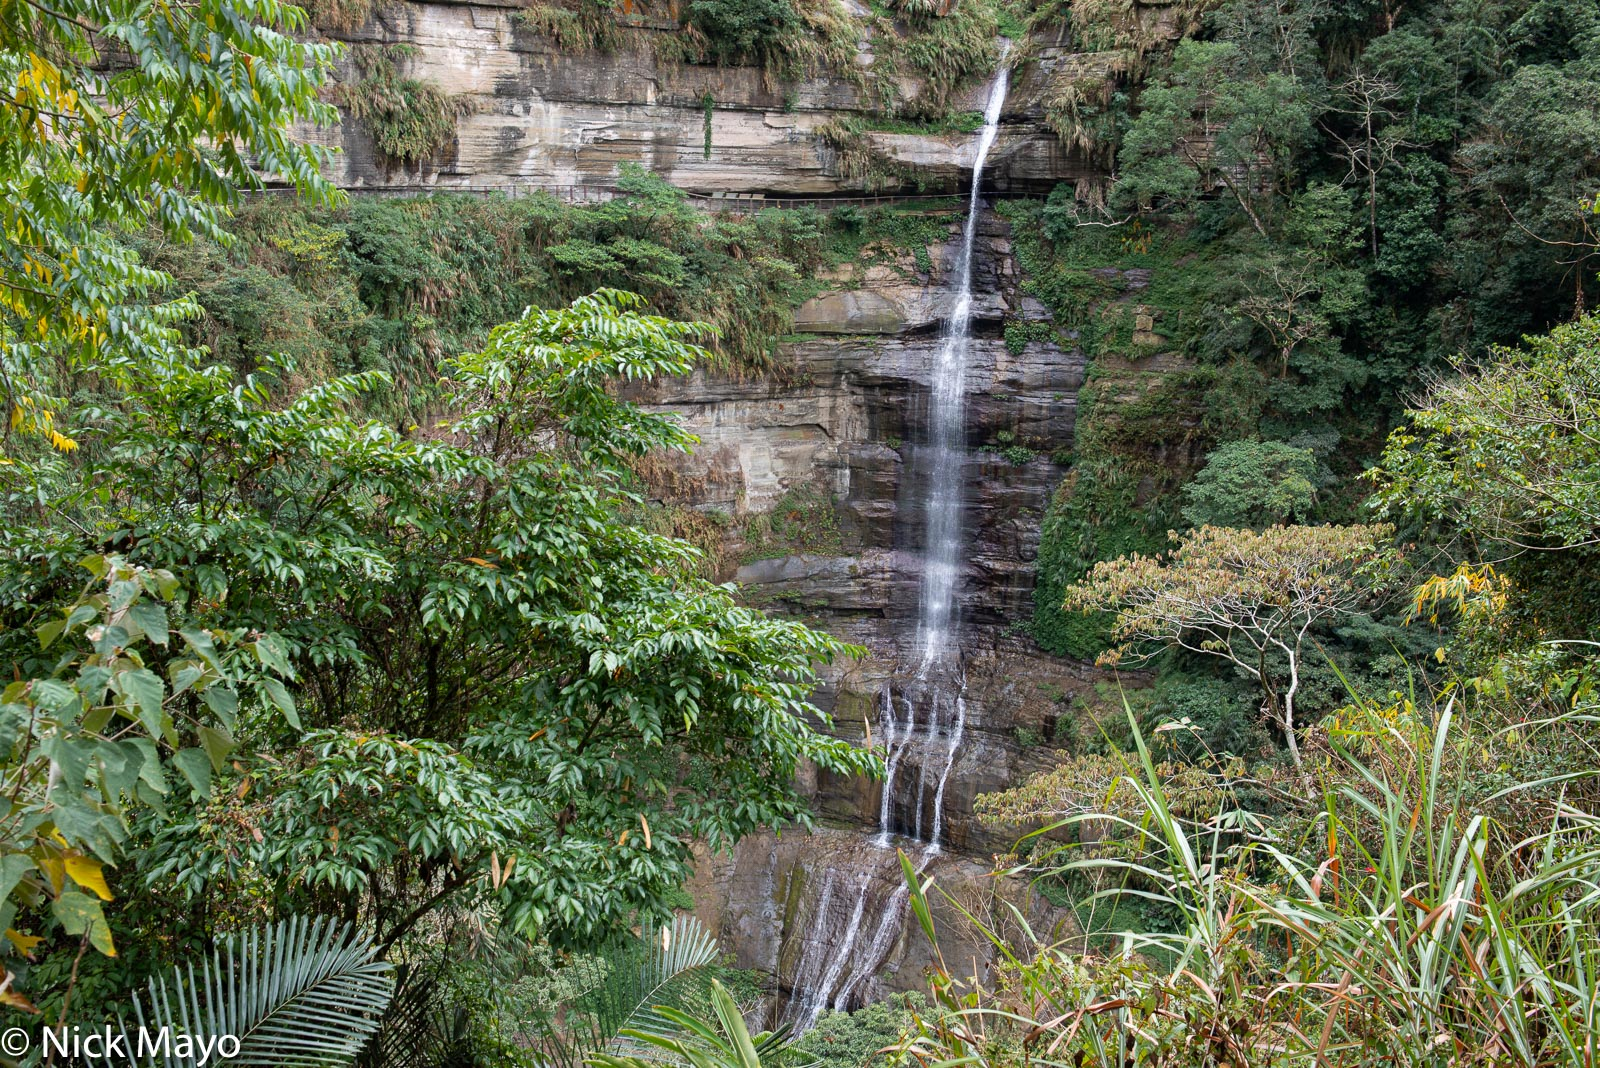 The Langgong waterfall, notable for the walkway passing behind it, at Zhukeng in Chiayi County.